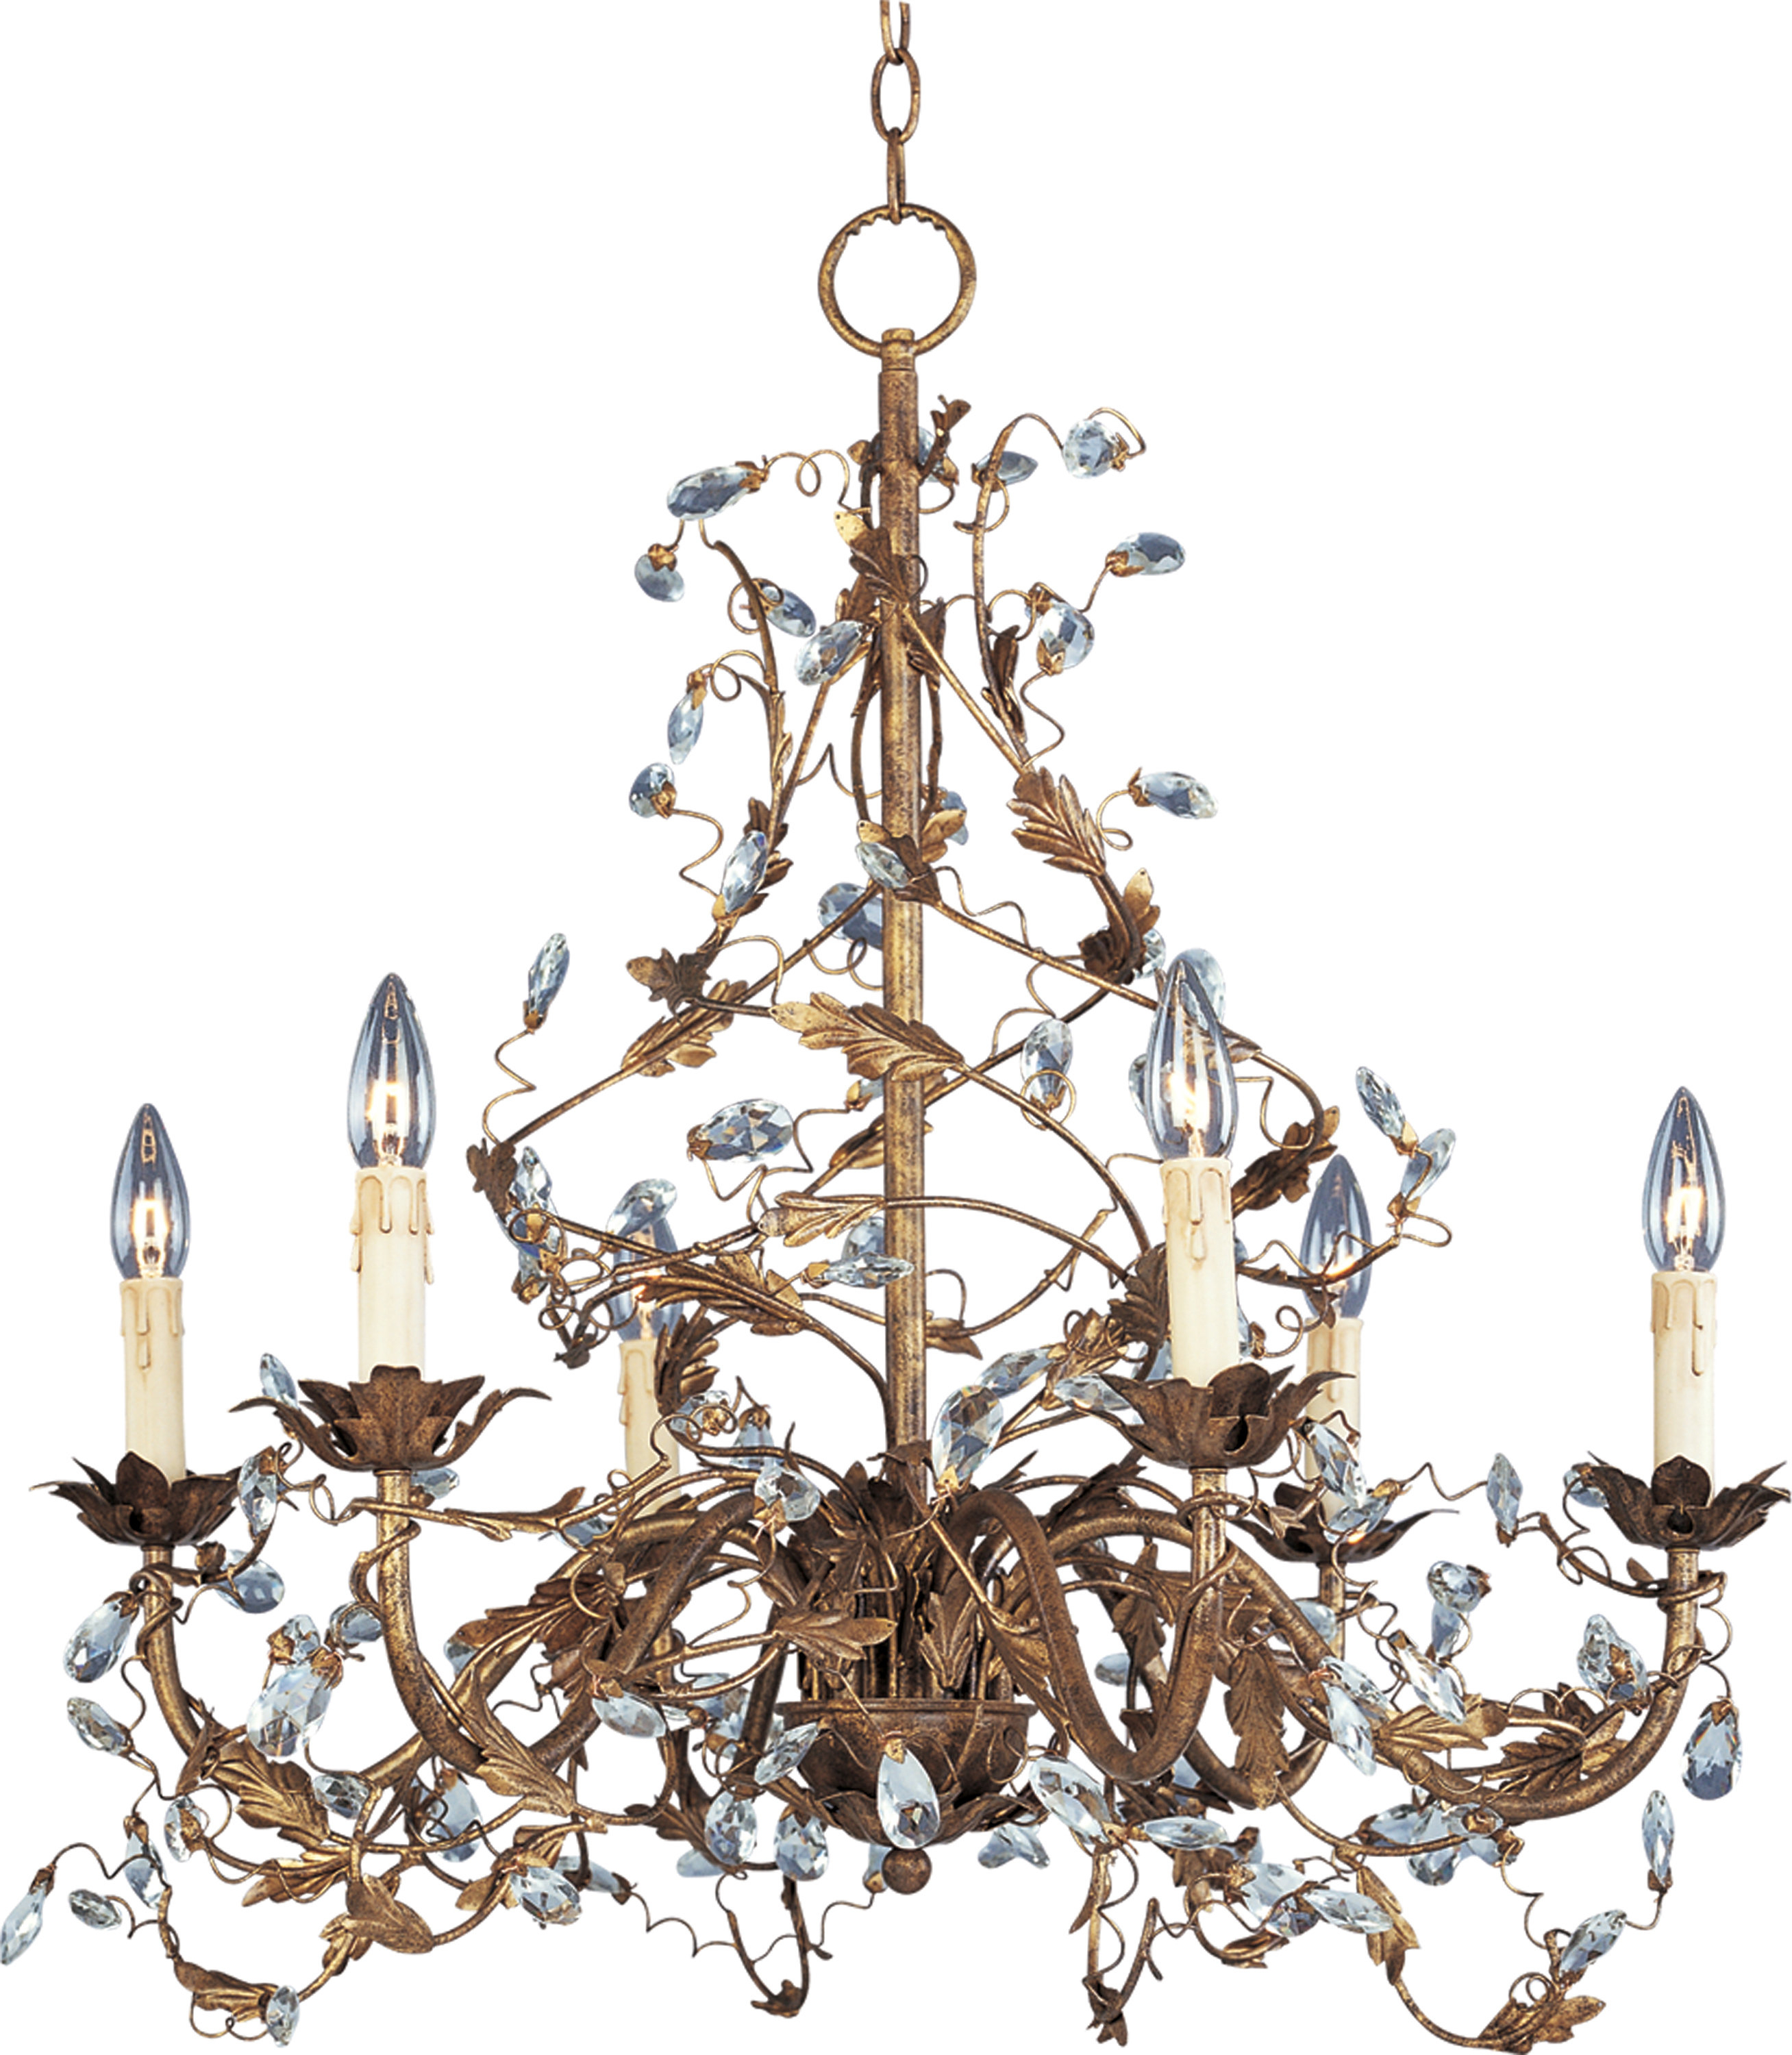 Hesse 5 Light Candle-Style Chandeliers with regard to Latest Kaiya 6-Light Candle Style Chandelier